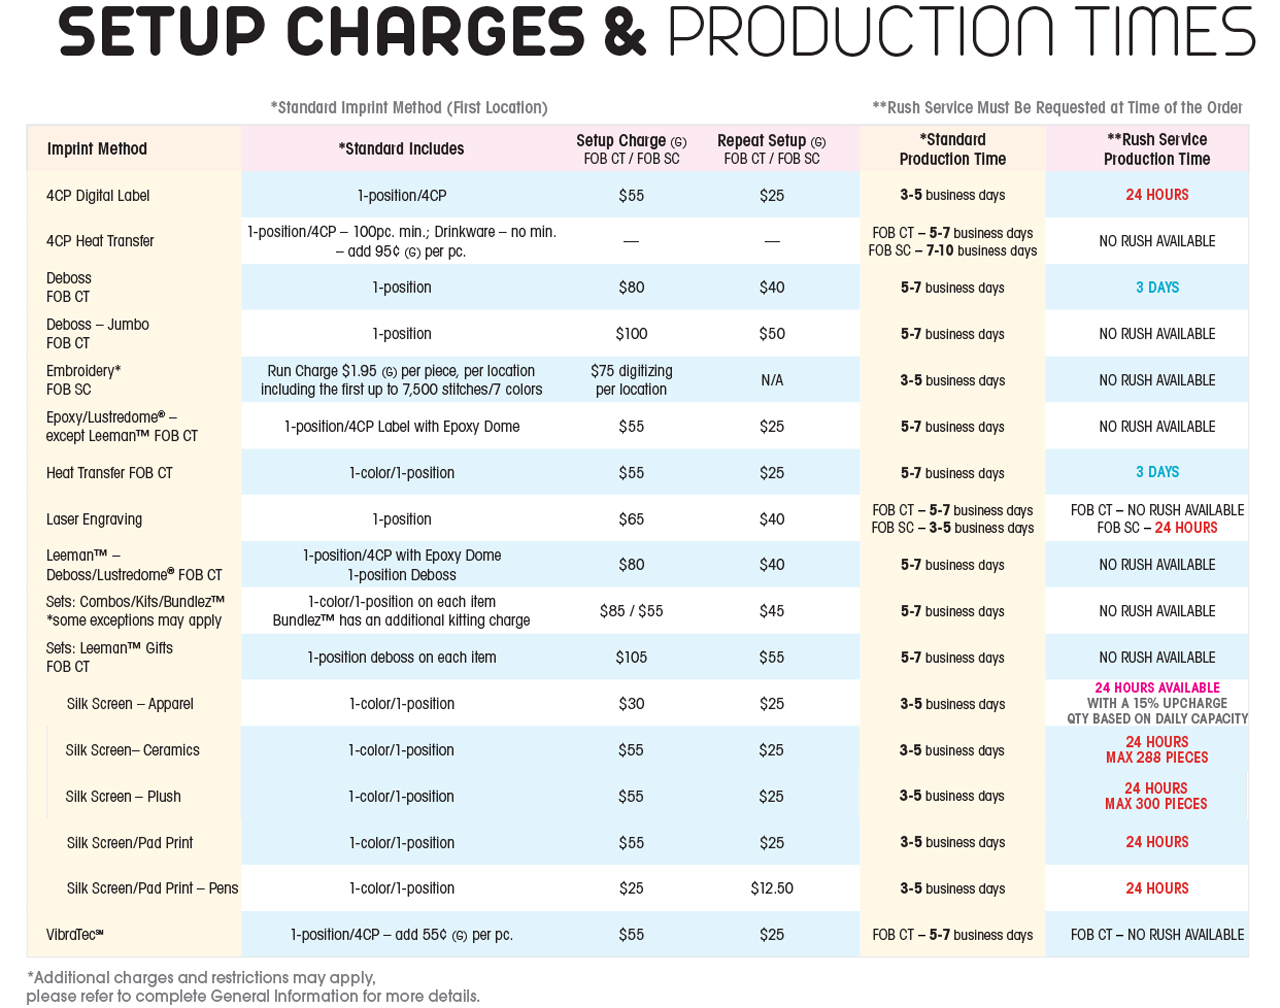 Setup Charges&Production Times